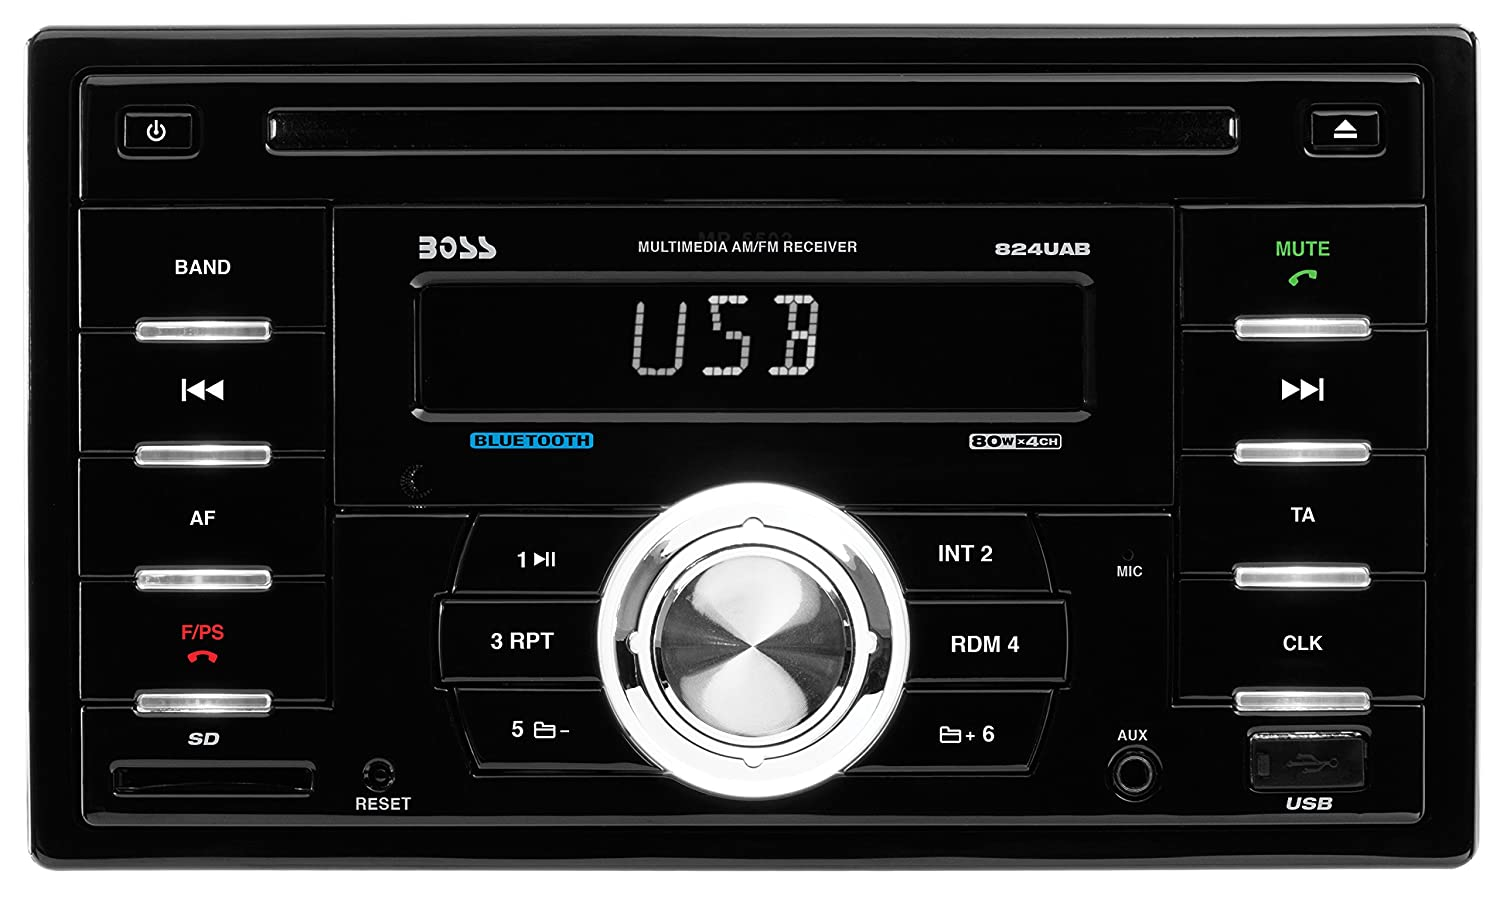 81VxJeUlz2L._SL1500_ amazon com boss audio 824uab double din cd mp3 player receiver  at crackthecode.co